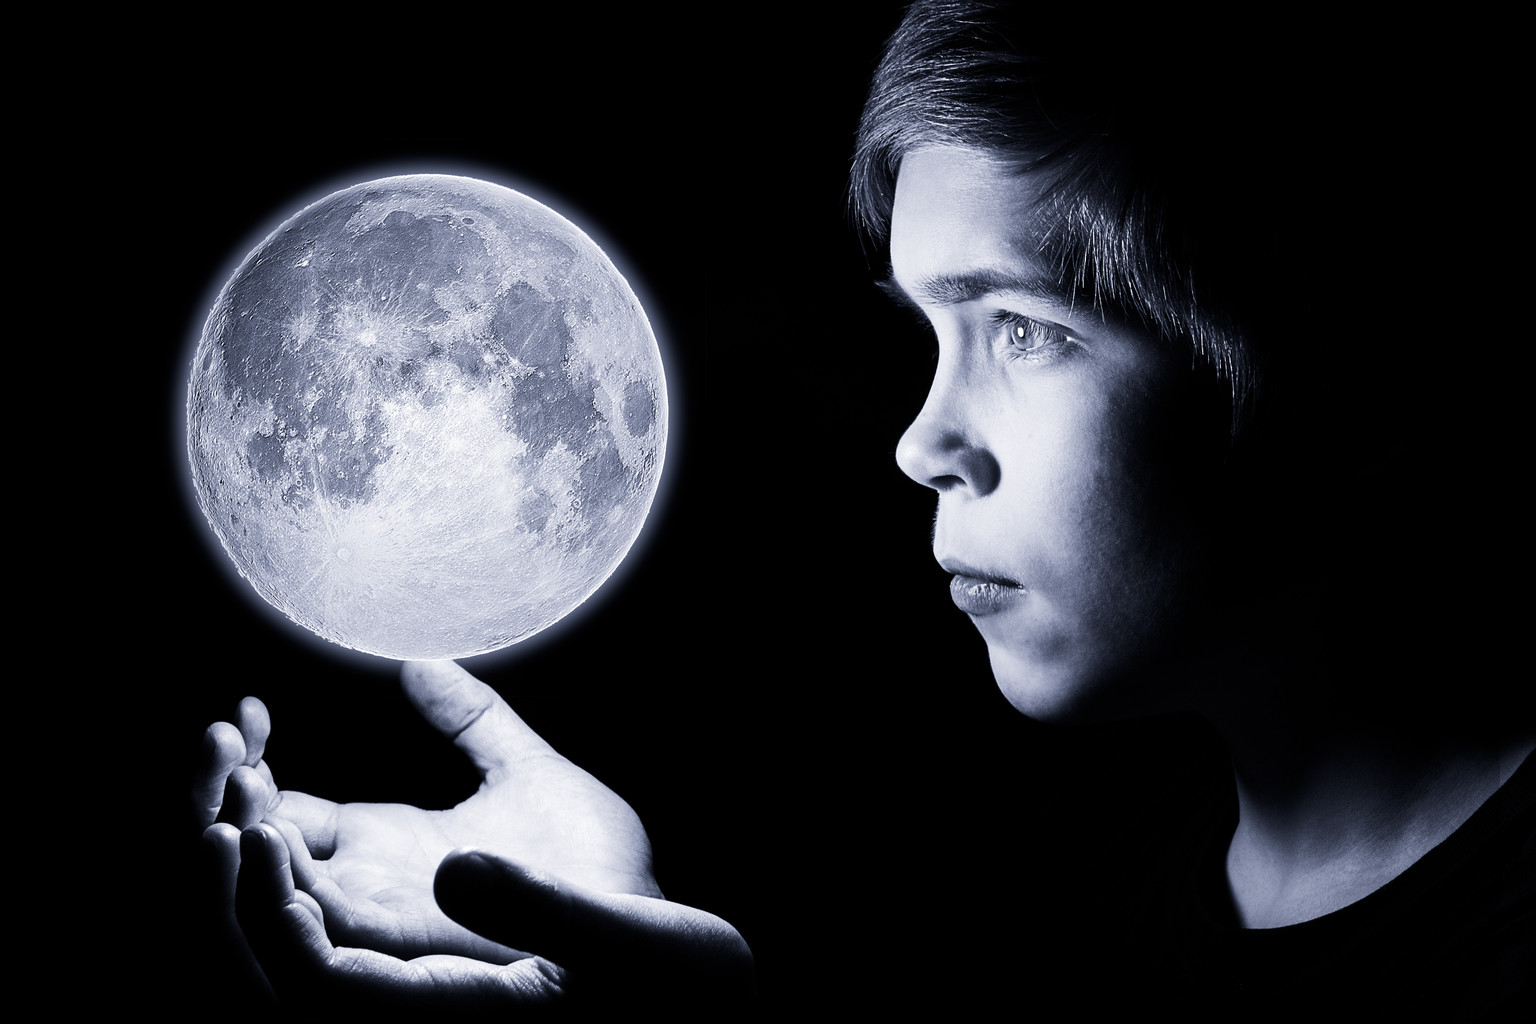 Http Torturedmind Org Looking At The Moon